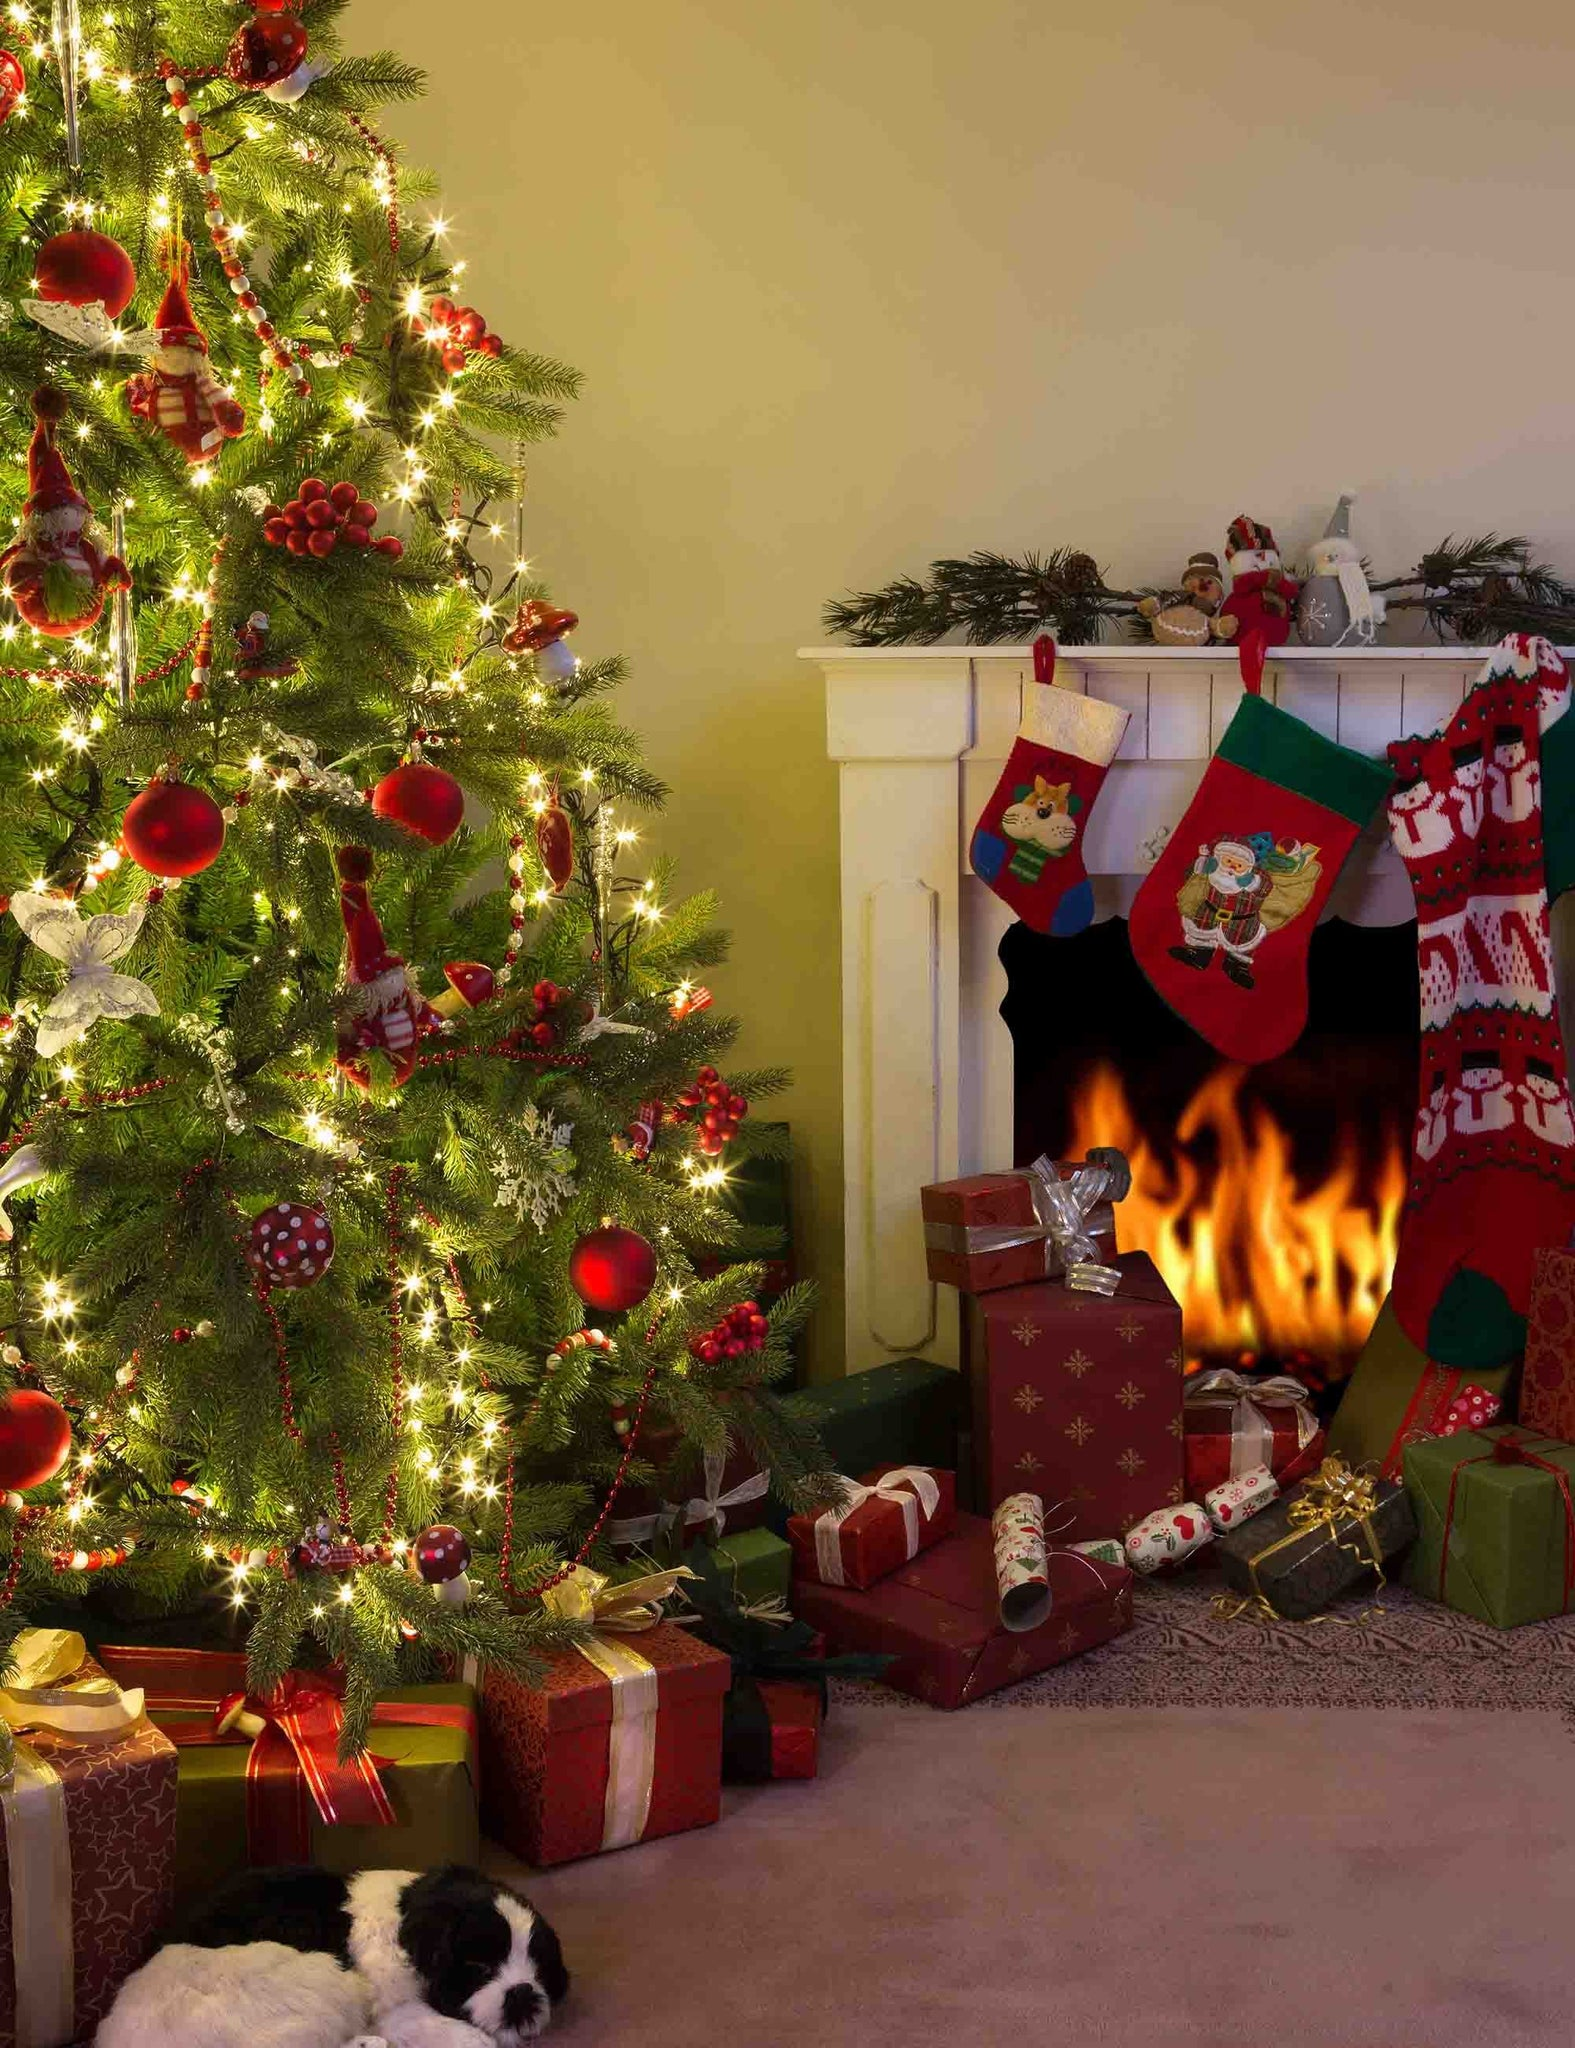 Christmas Tree With Gift And Fireplace For Holiday ...